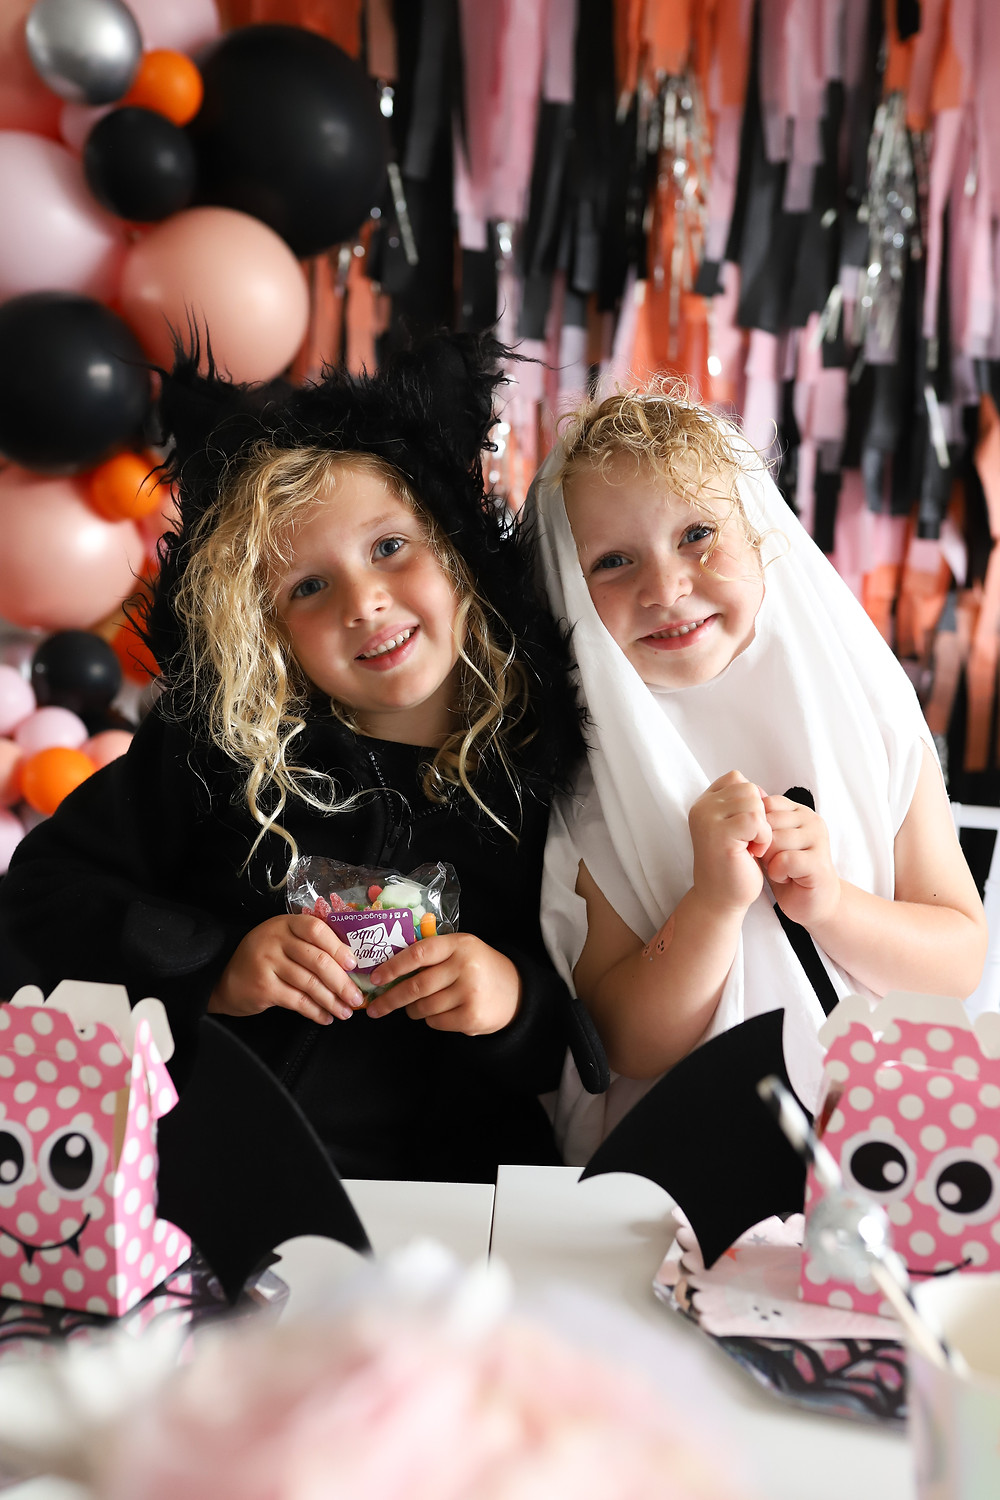 Two little girls dressed up for Halloween in a black cat costume and white ghost costume eating candied treats from their pink party bags, behind a wall filled with pink orange and black balloons and streamers.